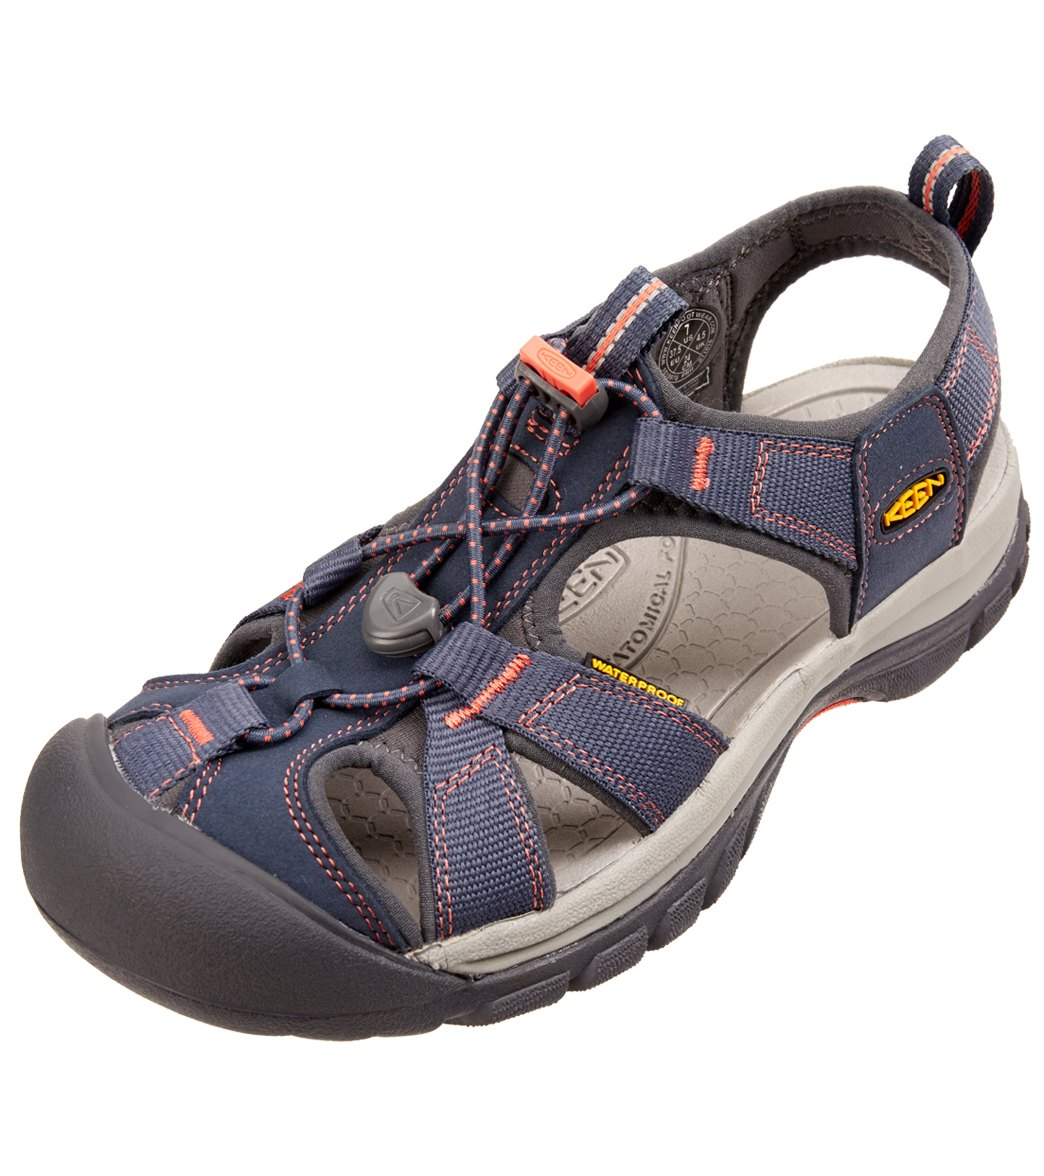 f18a6391758b Keen Women s Venice H2 Water Shoes at SwimOutlet.com - Free Shipping